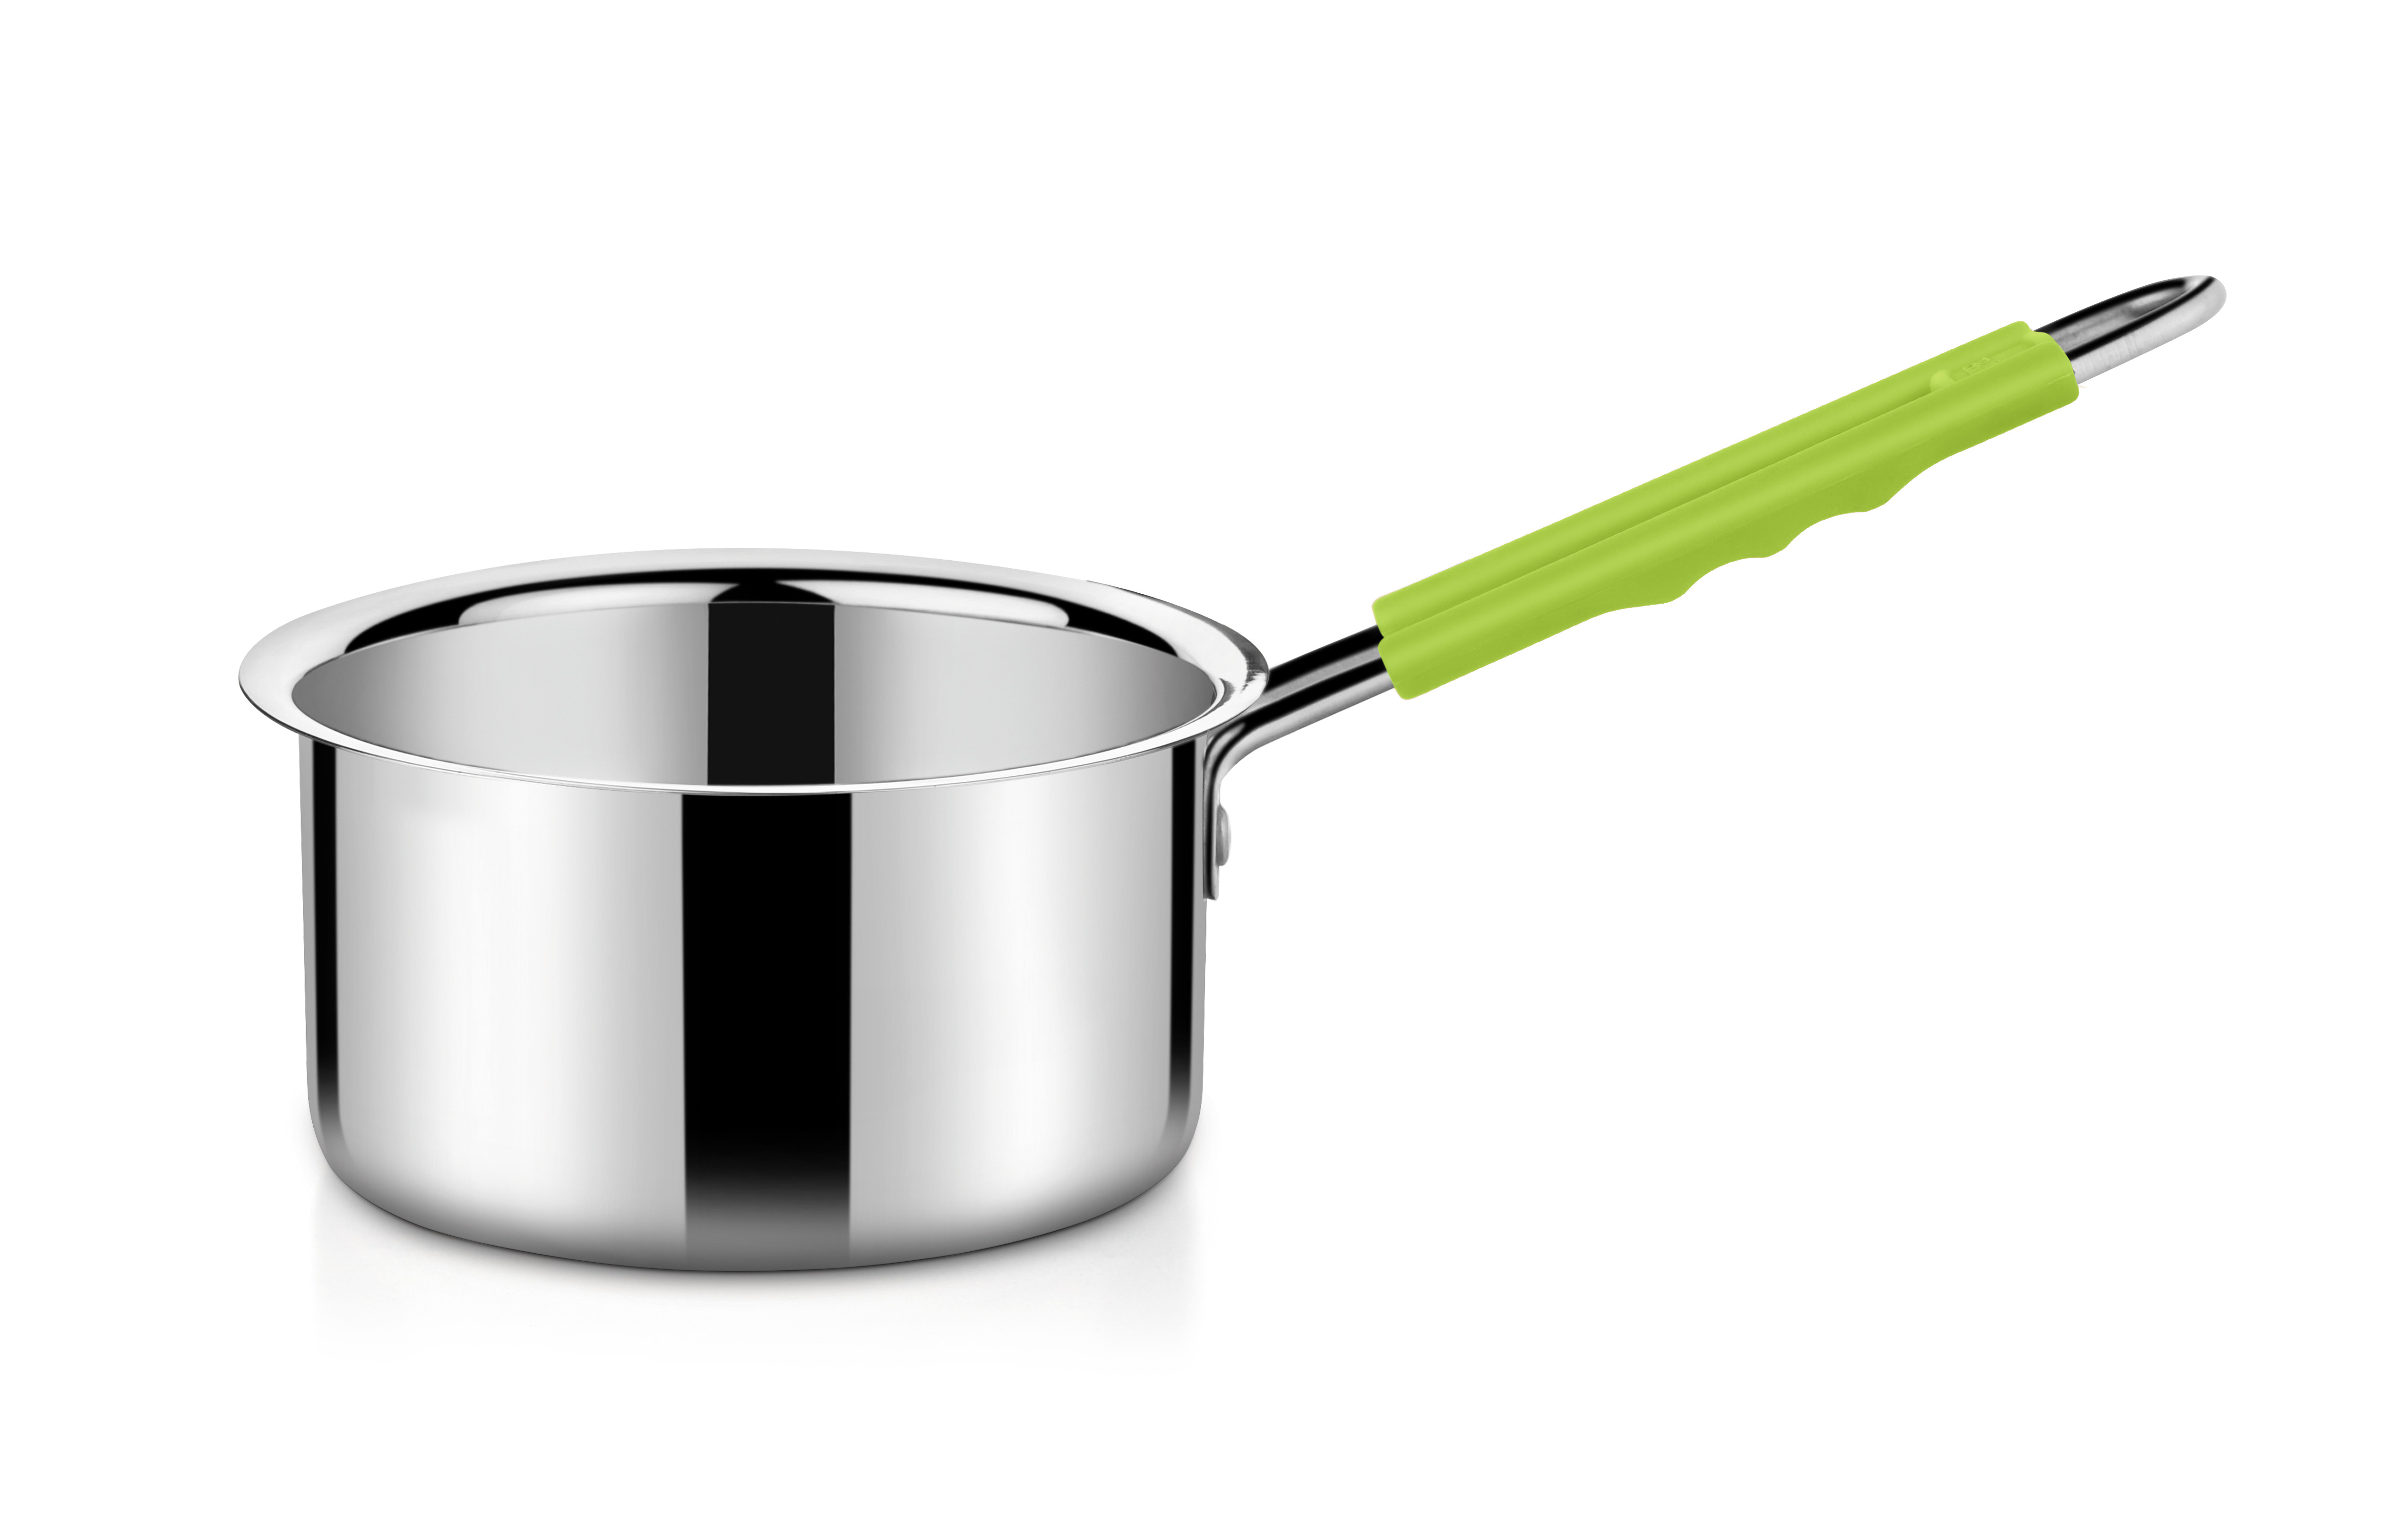 Bonita Stainless Steel With Silicone Sauce Pans in Green Colour by Bonita